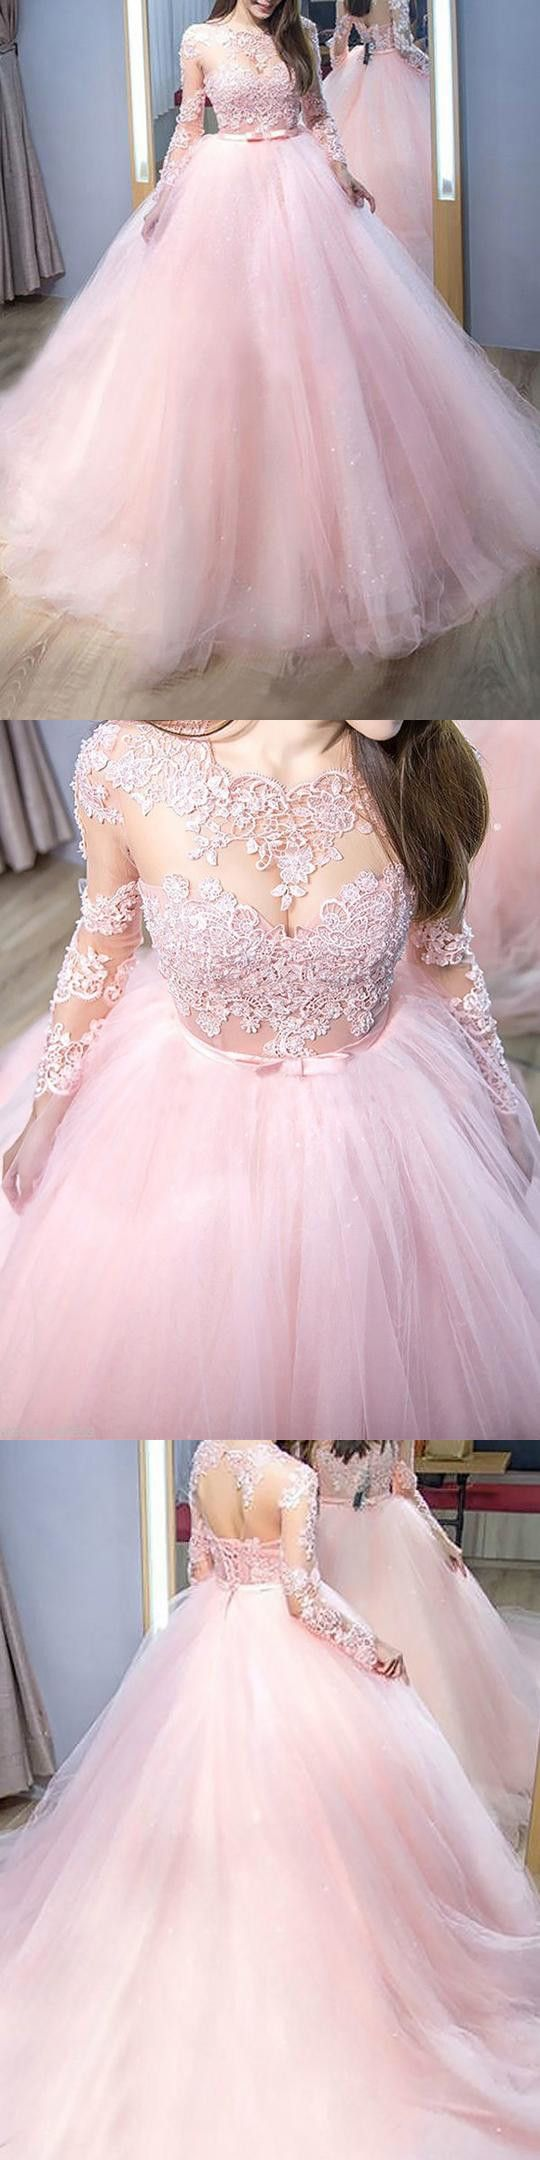 bc6bfff0a3 Ball Gown Pink Prom Dress Lace African Plus Size Long Sleeve Prom Dress    VB4163 in 2019